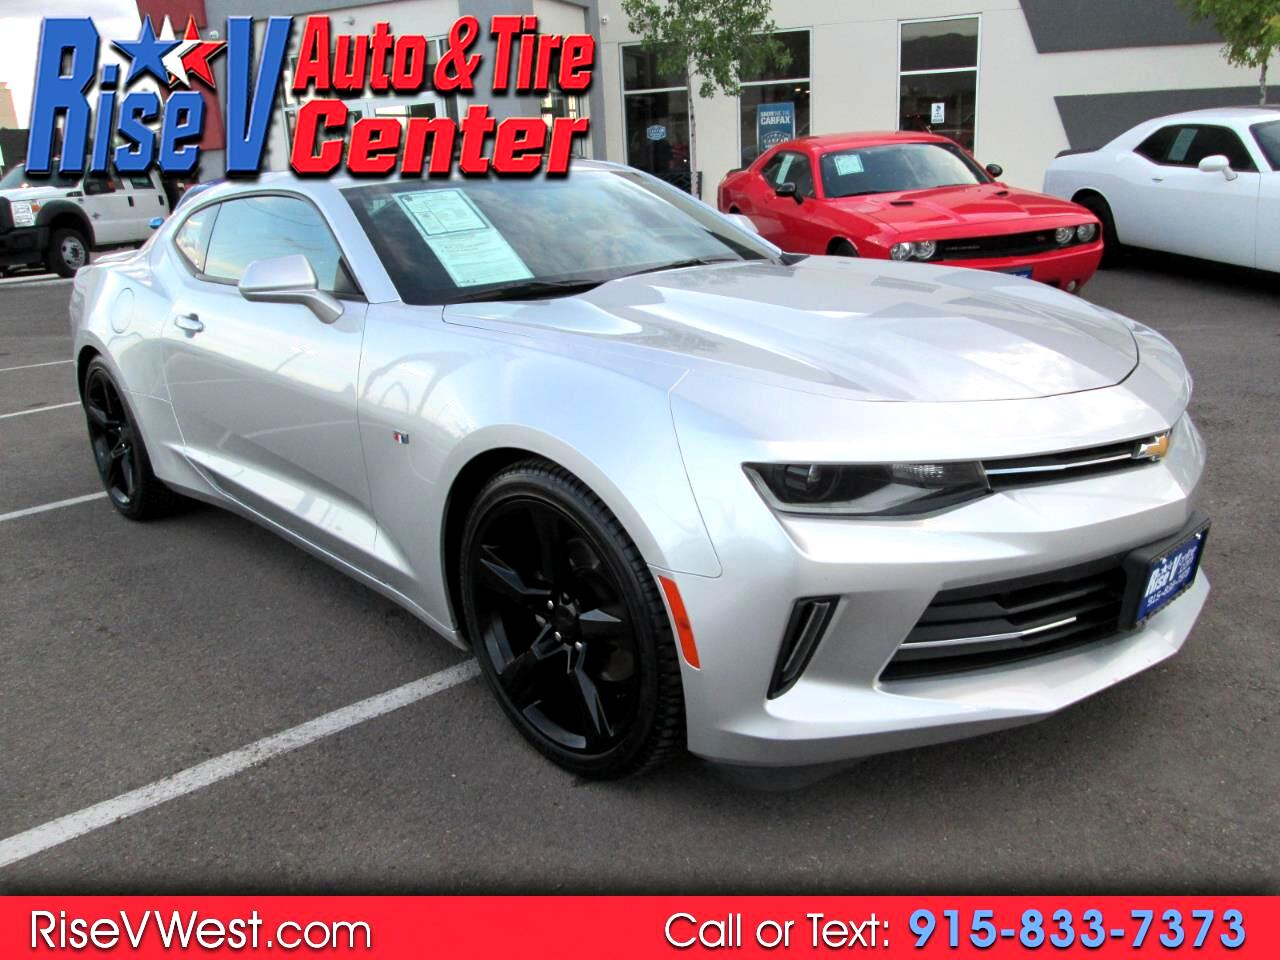 Chevrolet El Paso >> Used 2017 Chevrolet Camaro 2dr Cpe 1lt Rs For Sale In El